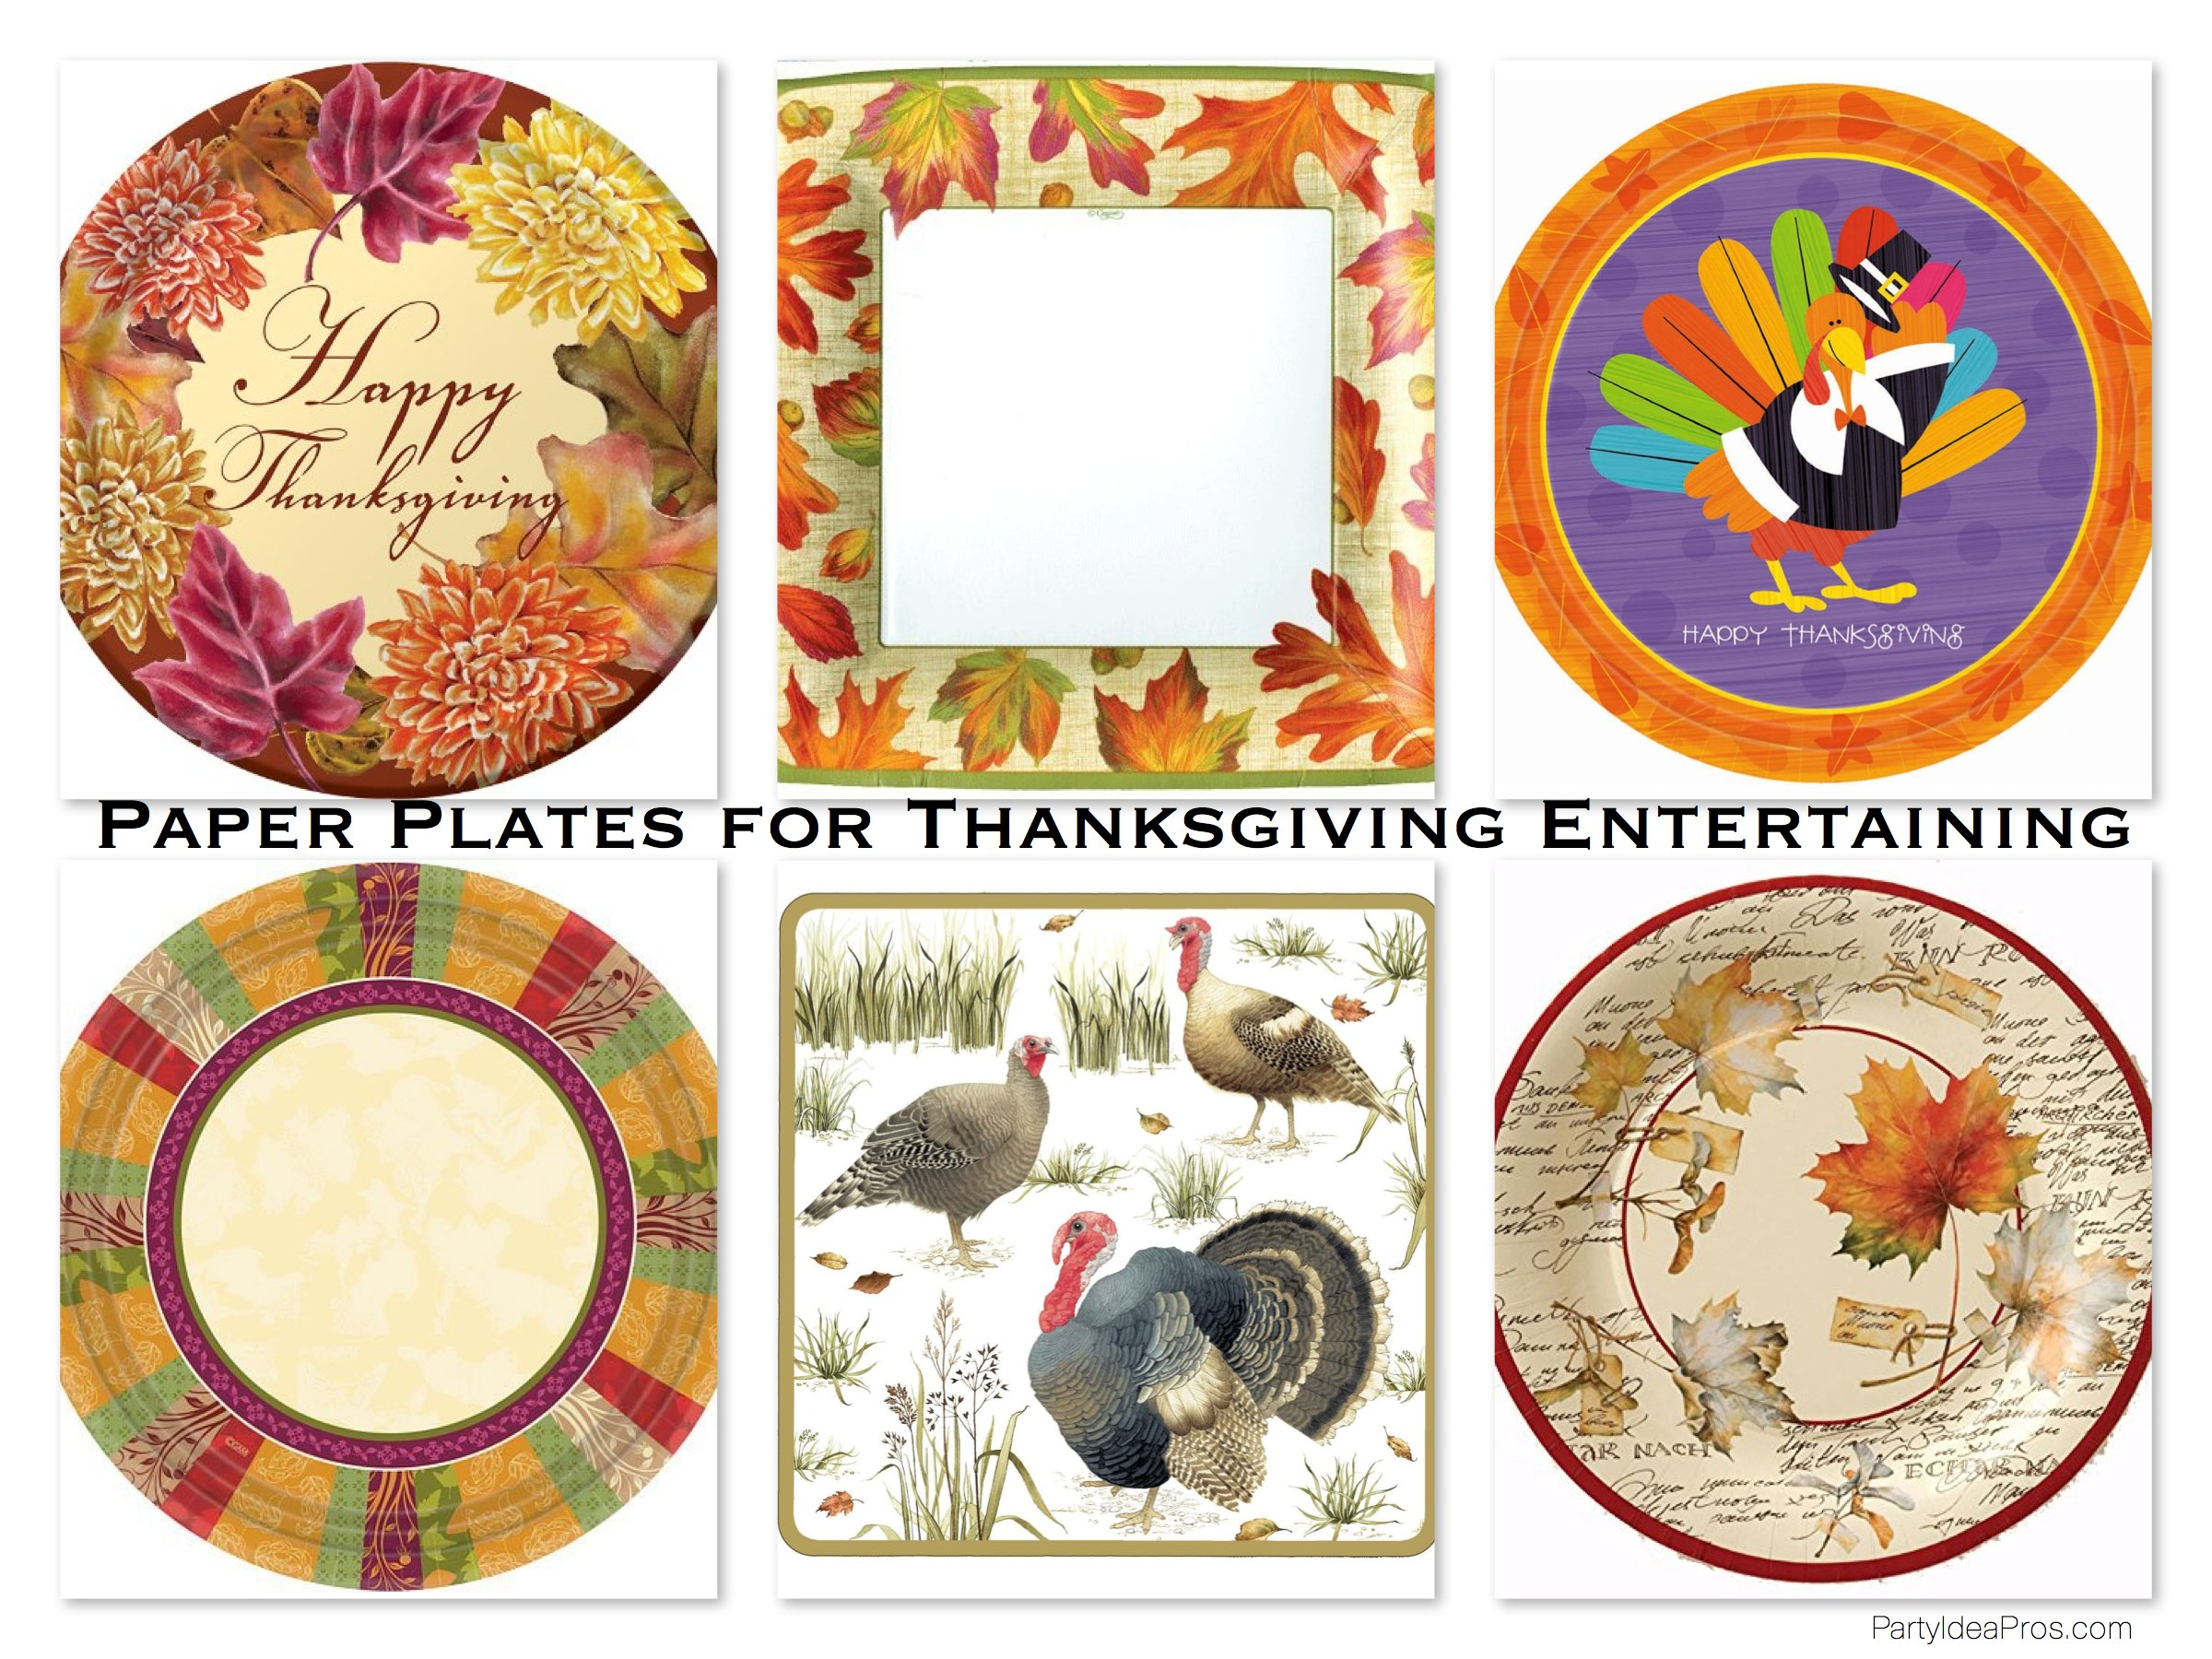 Paper Plates for Thanksgiving Entertaining